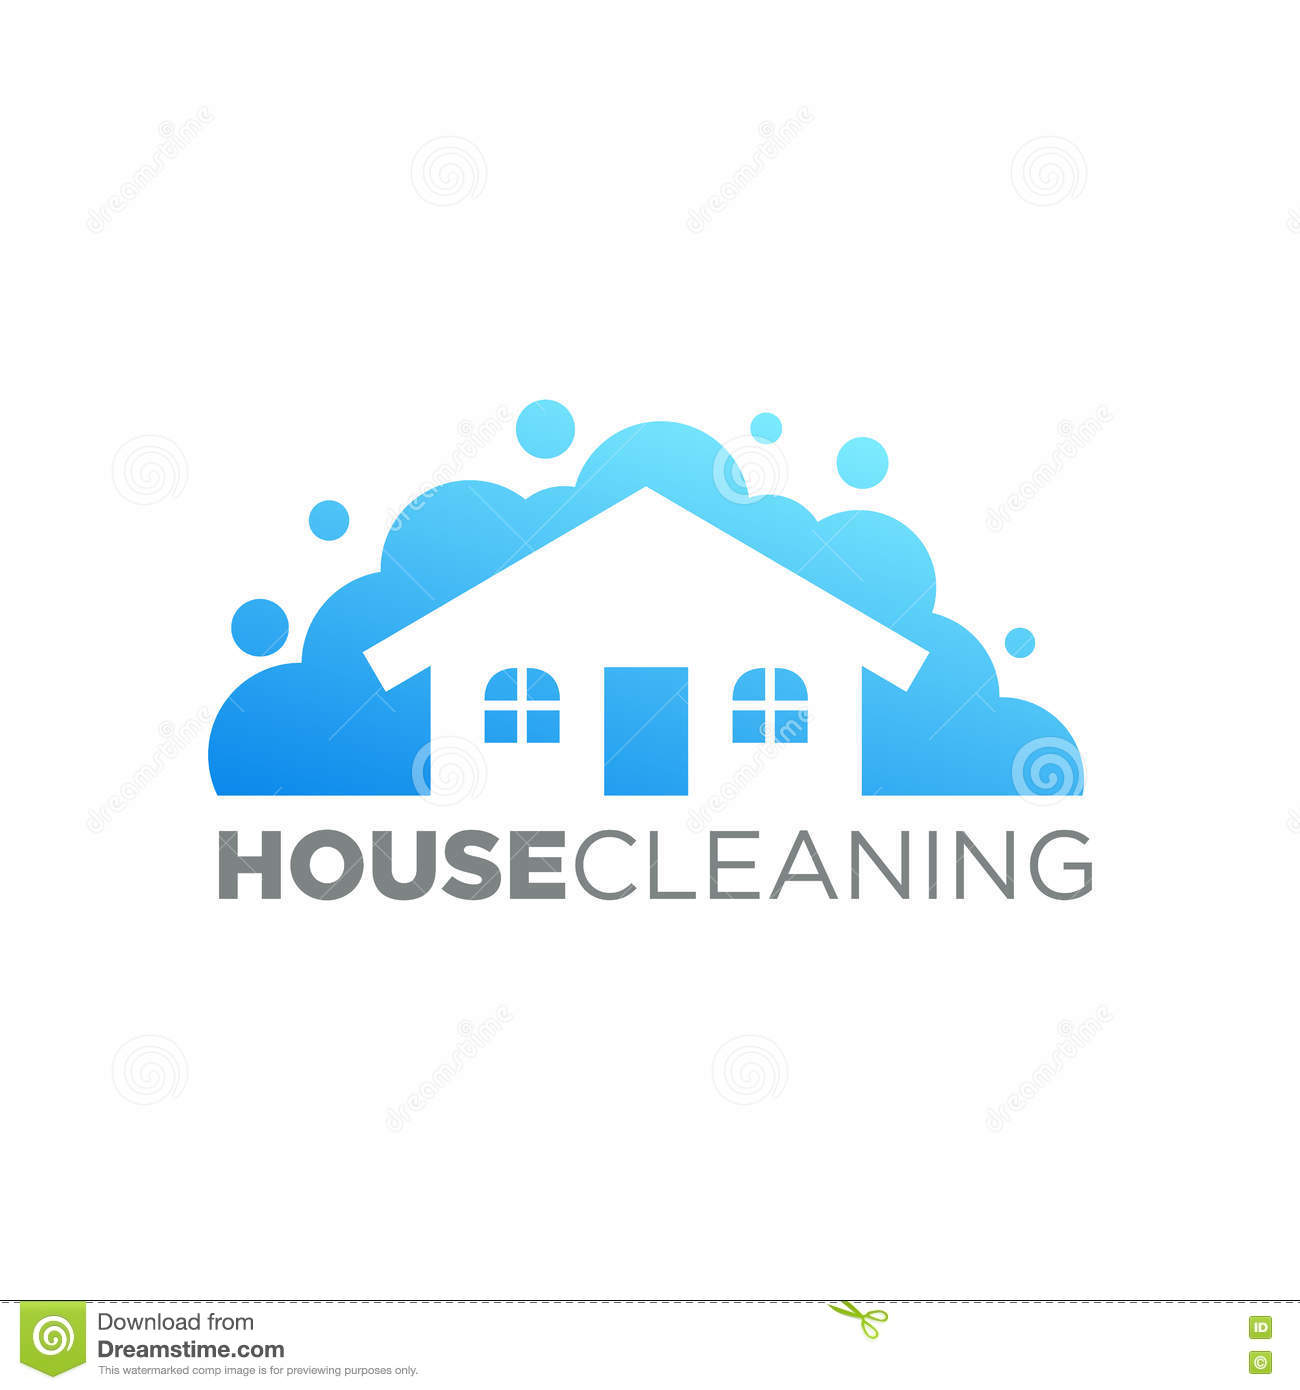 Building Cleaning Service Logo : House cleaning services logo imgkid the image